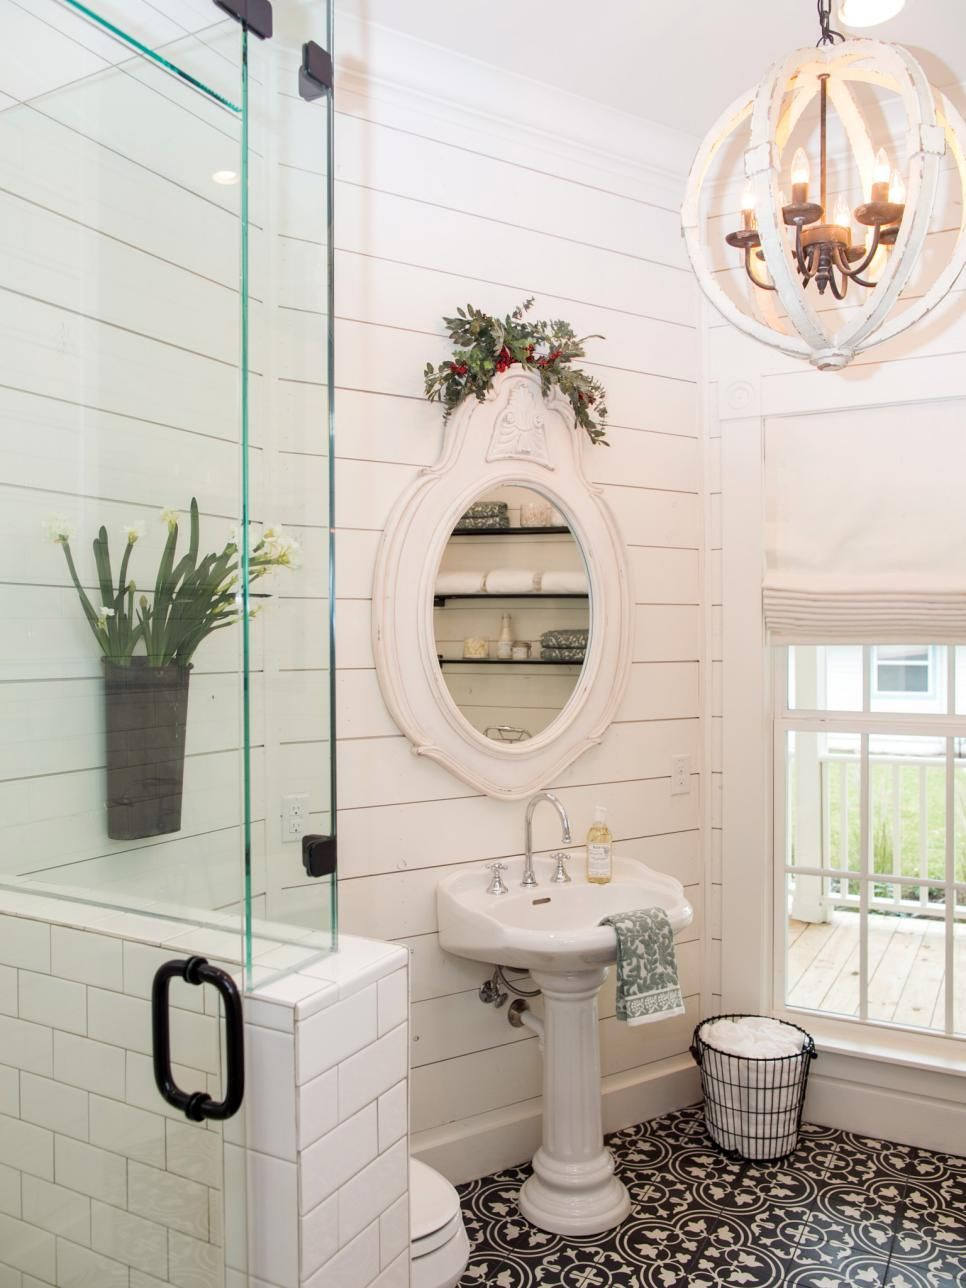 farmhouse bathrooms vintage farm joanna gaines and sinks fixer upper renovation and holiday decor at magnolia house bed and breakfast